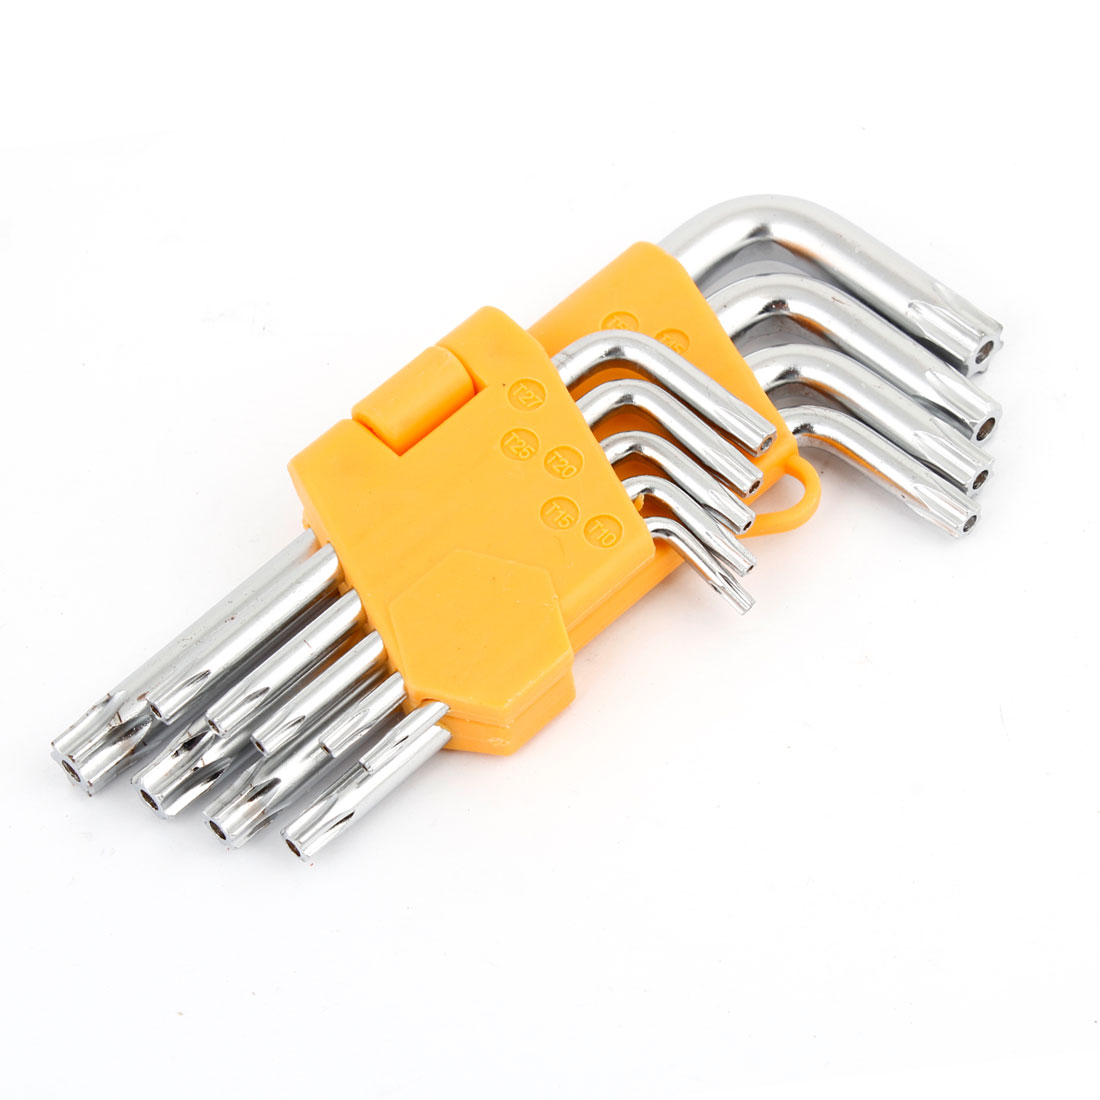 9 in 1 L Shaped Metal T10-T50 Hexagon Hex Key Wrench